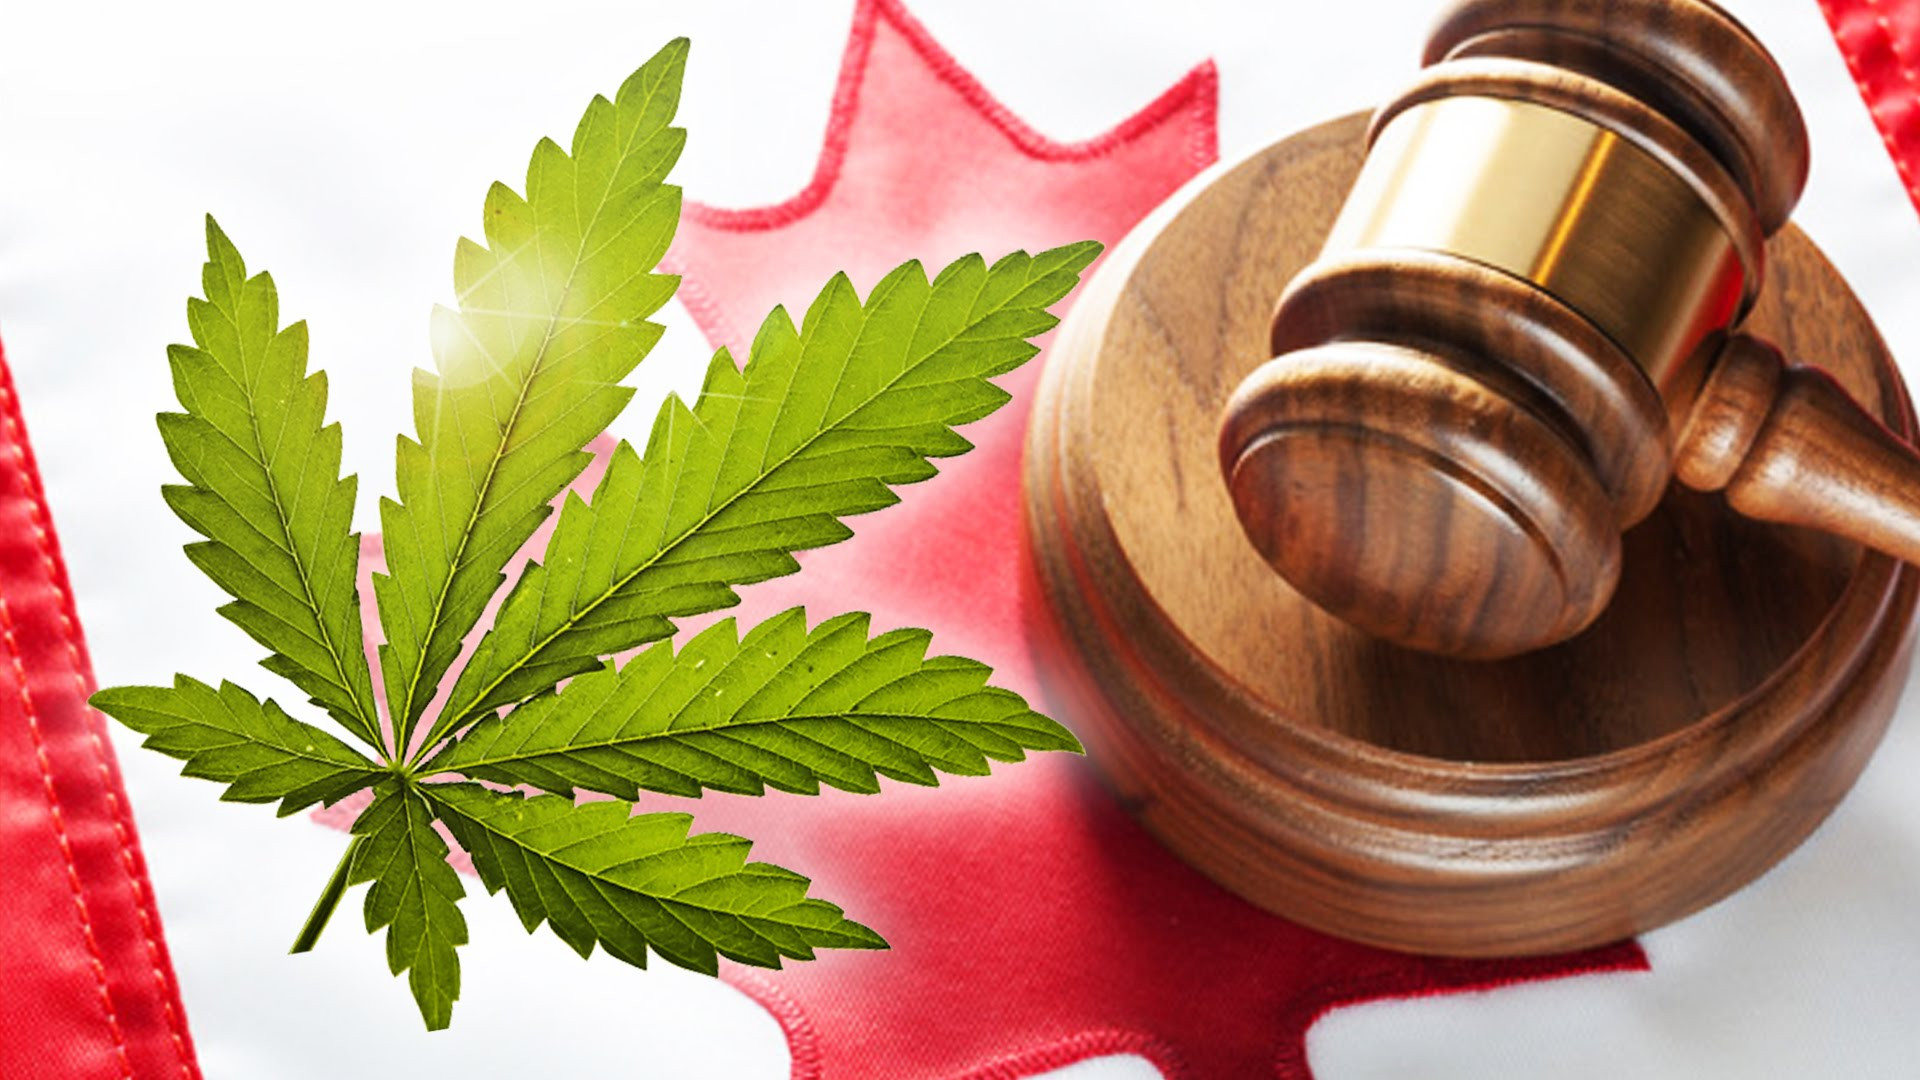 Wondering How Canadian Cannabis Legalization Will Impact The Work Place?